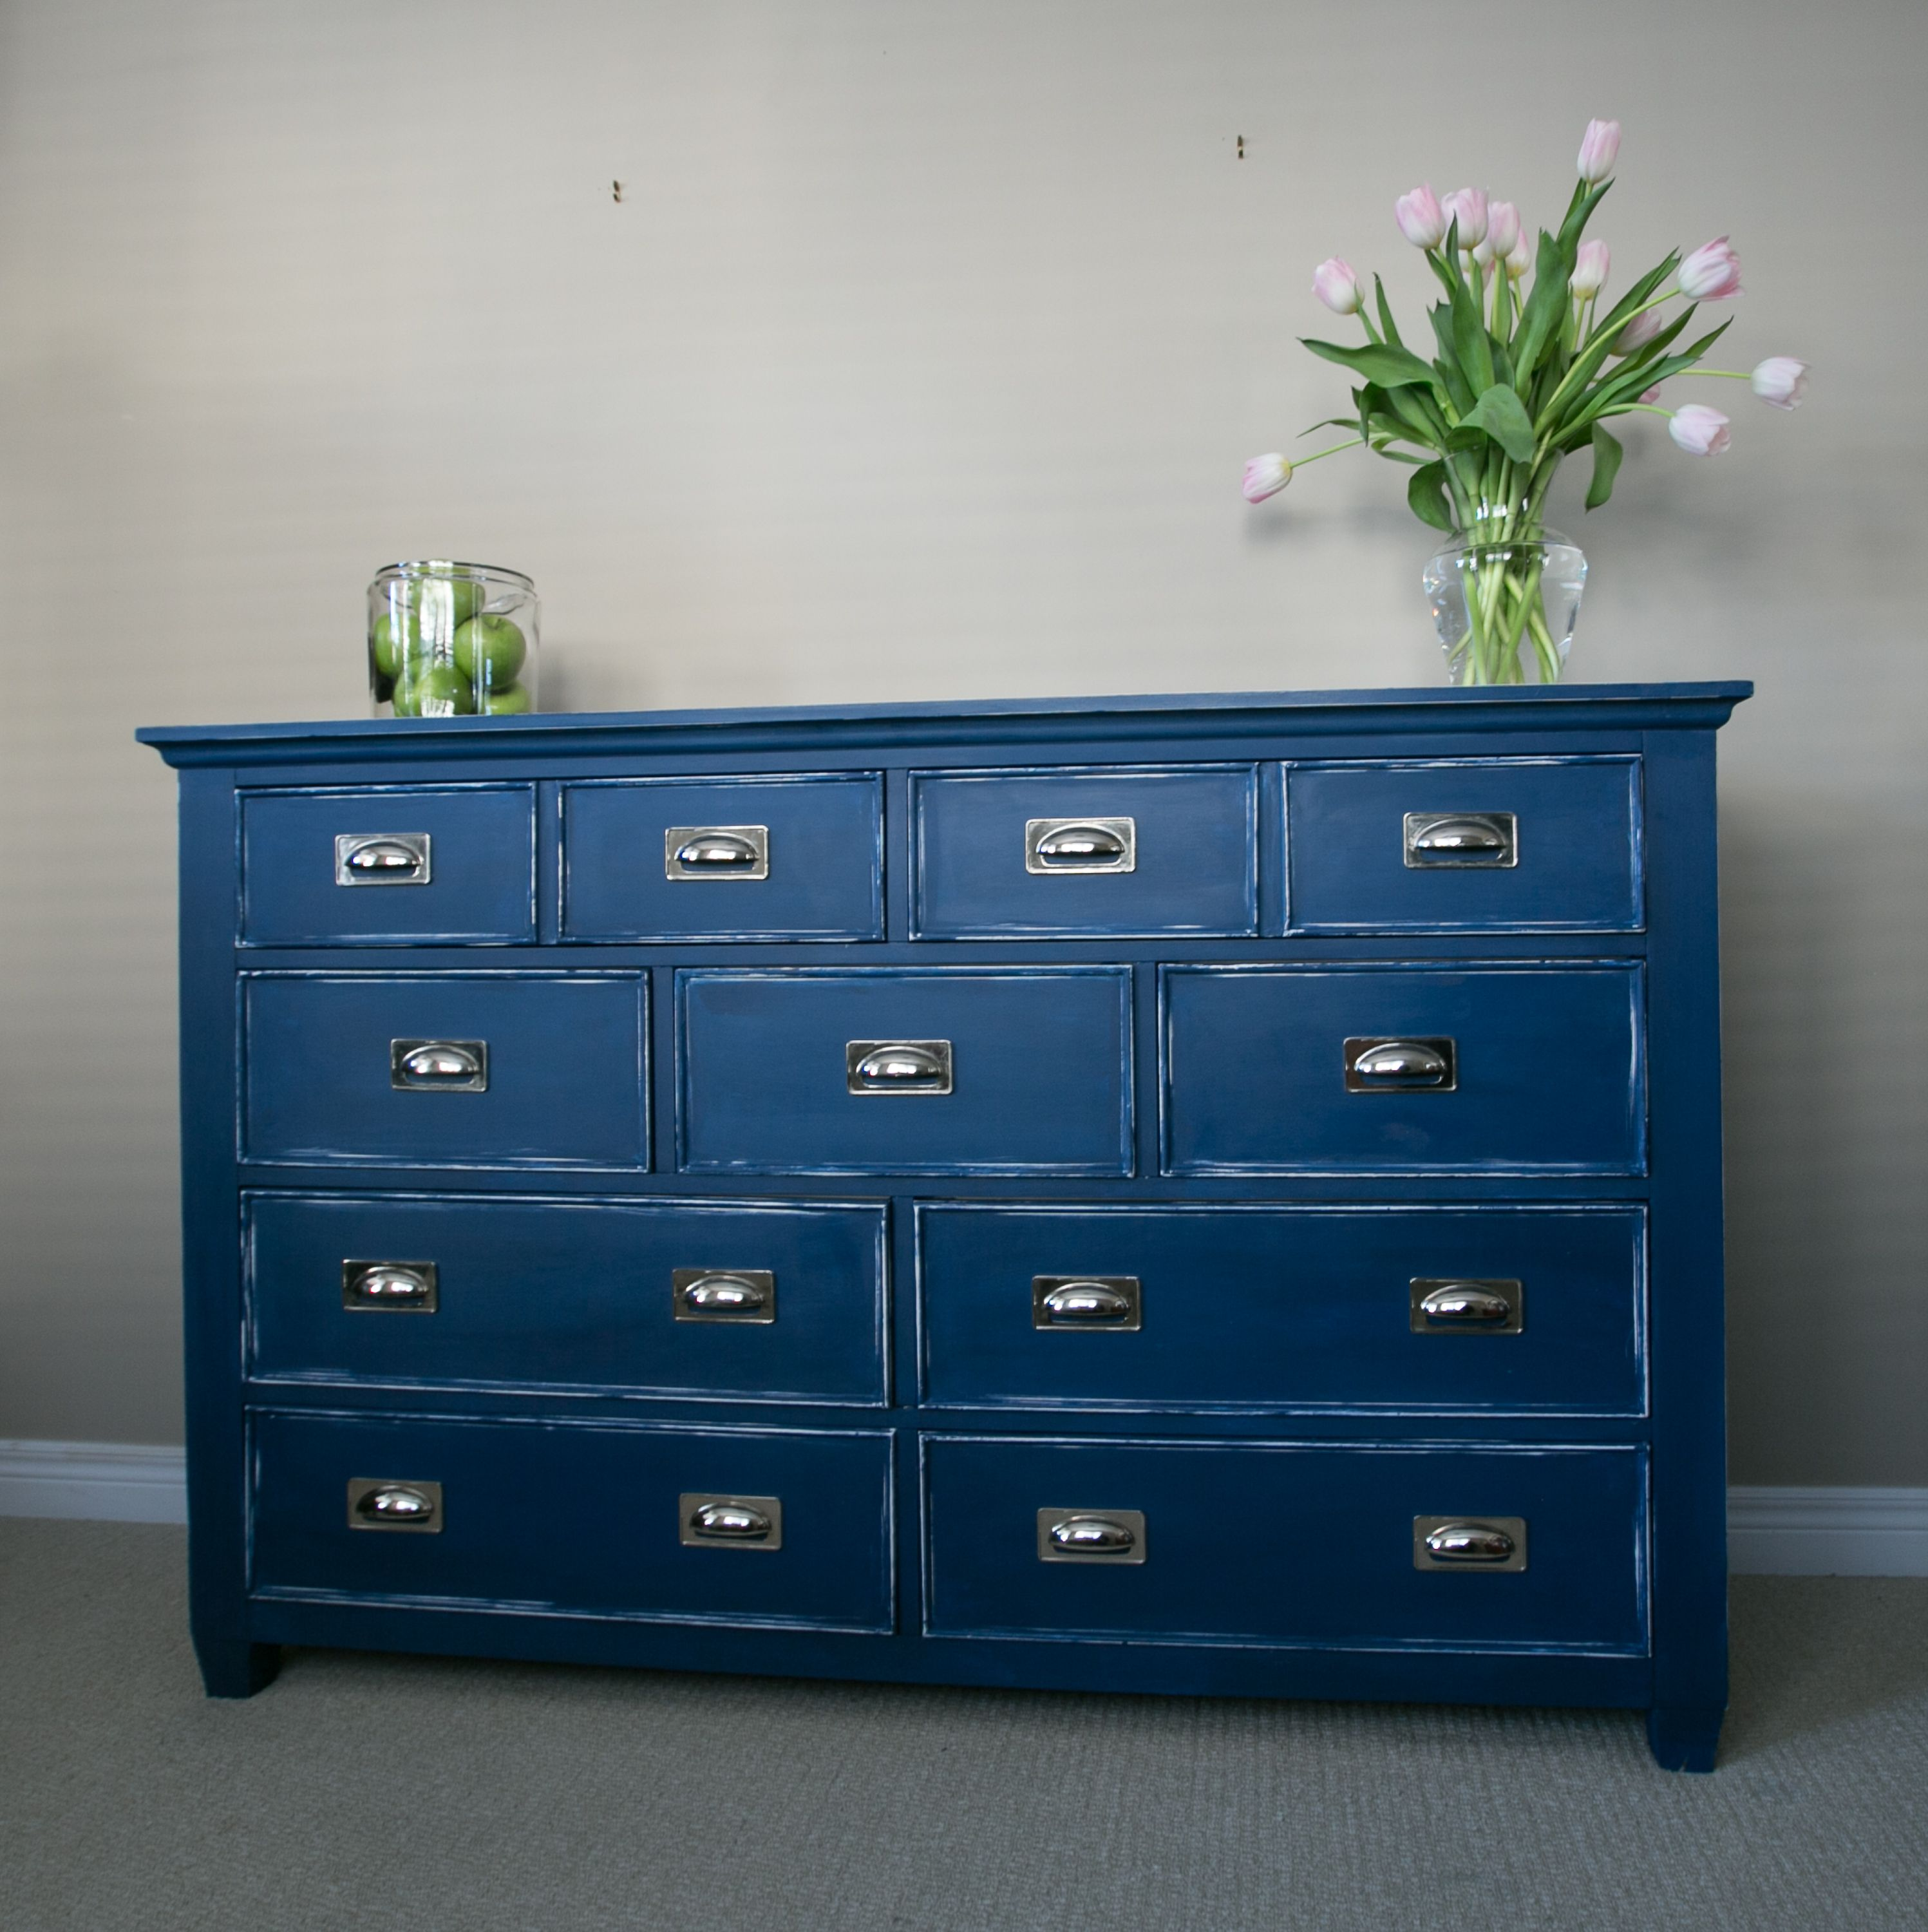 Uncategorized cobalt blue furniture englishsurvivalkit for Furniture paint colors